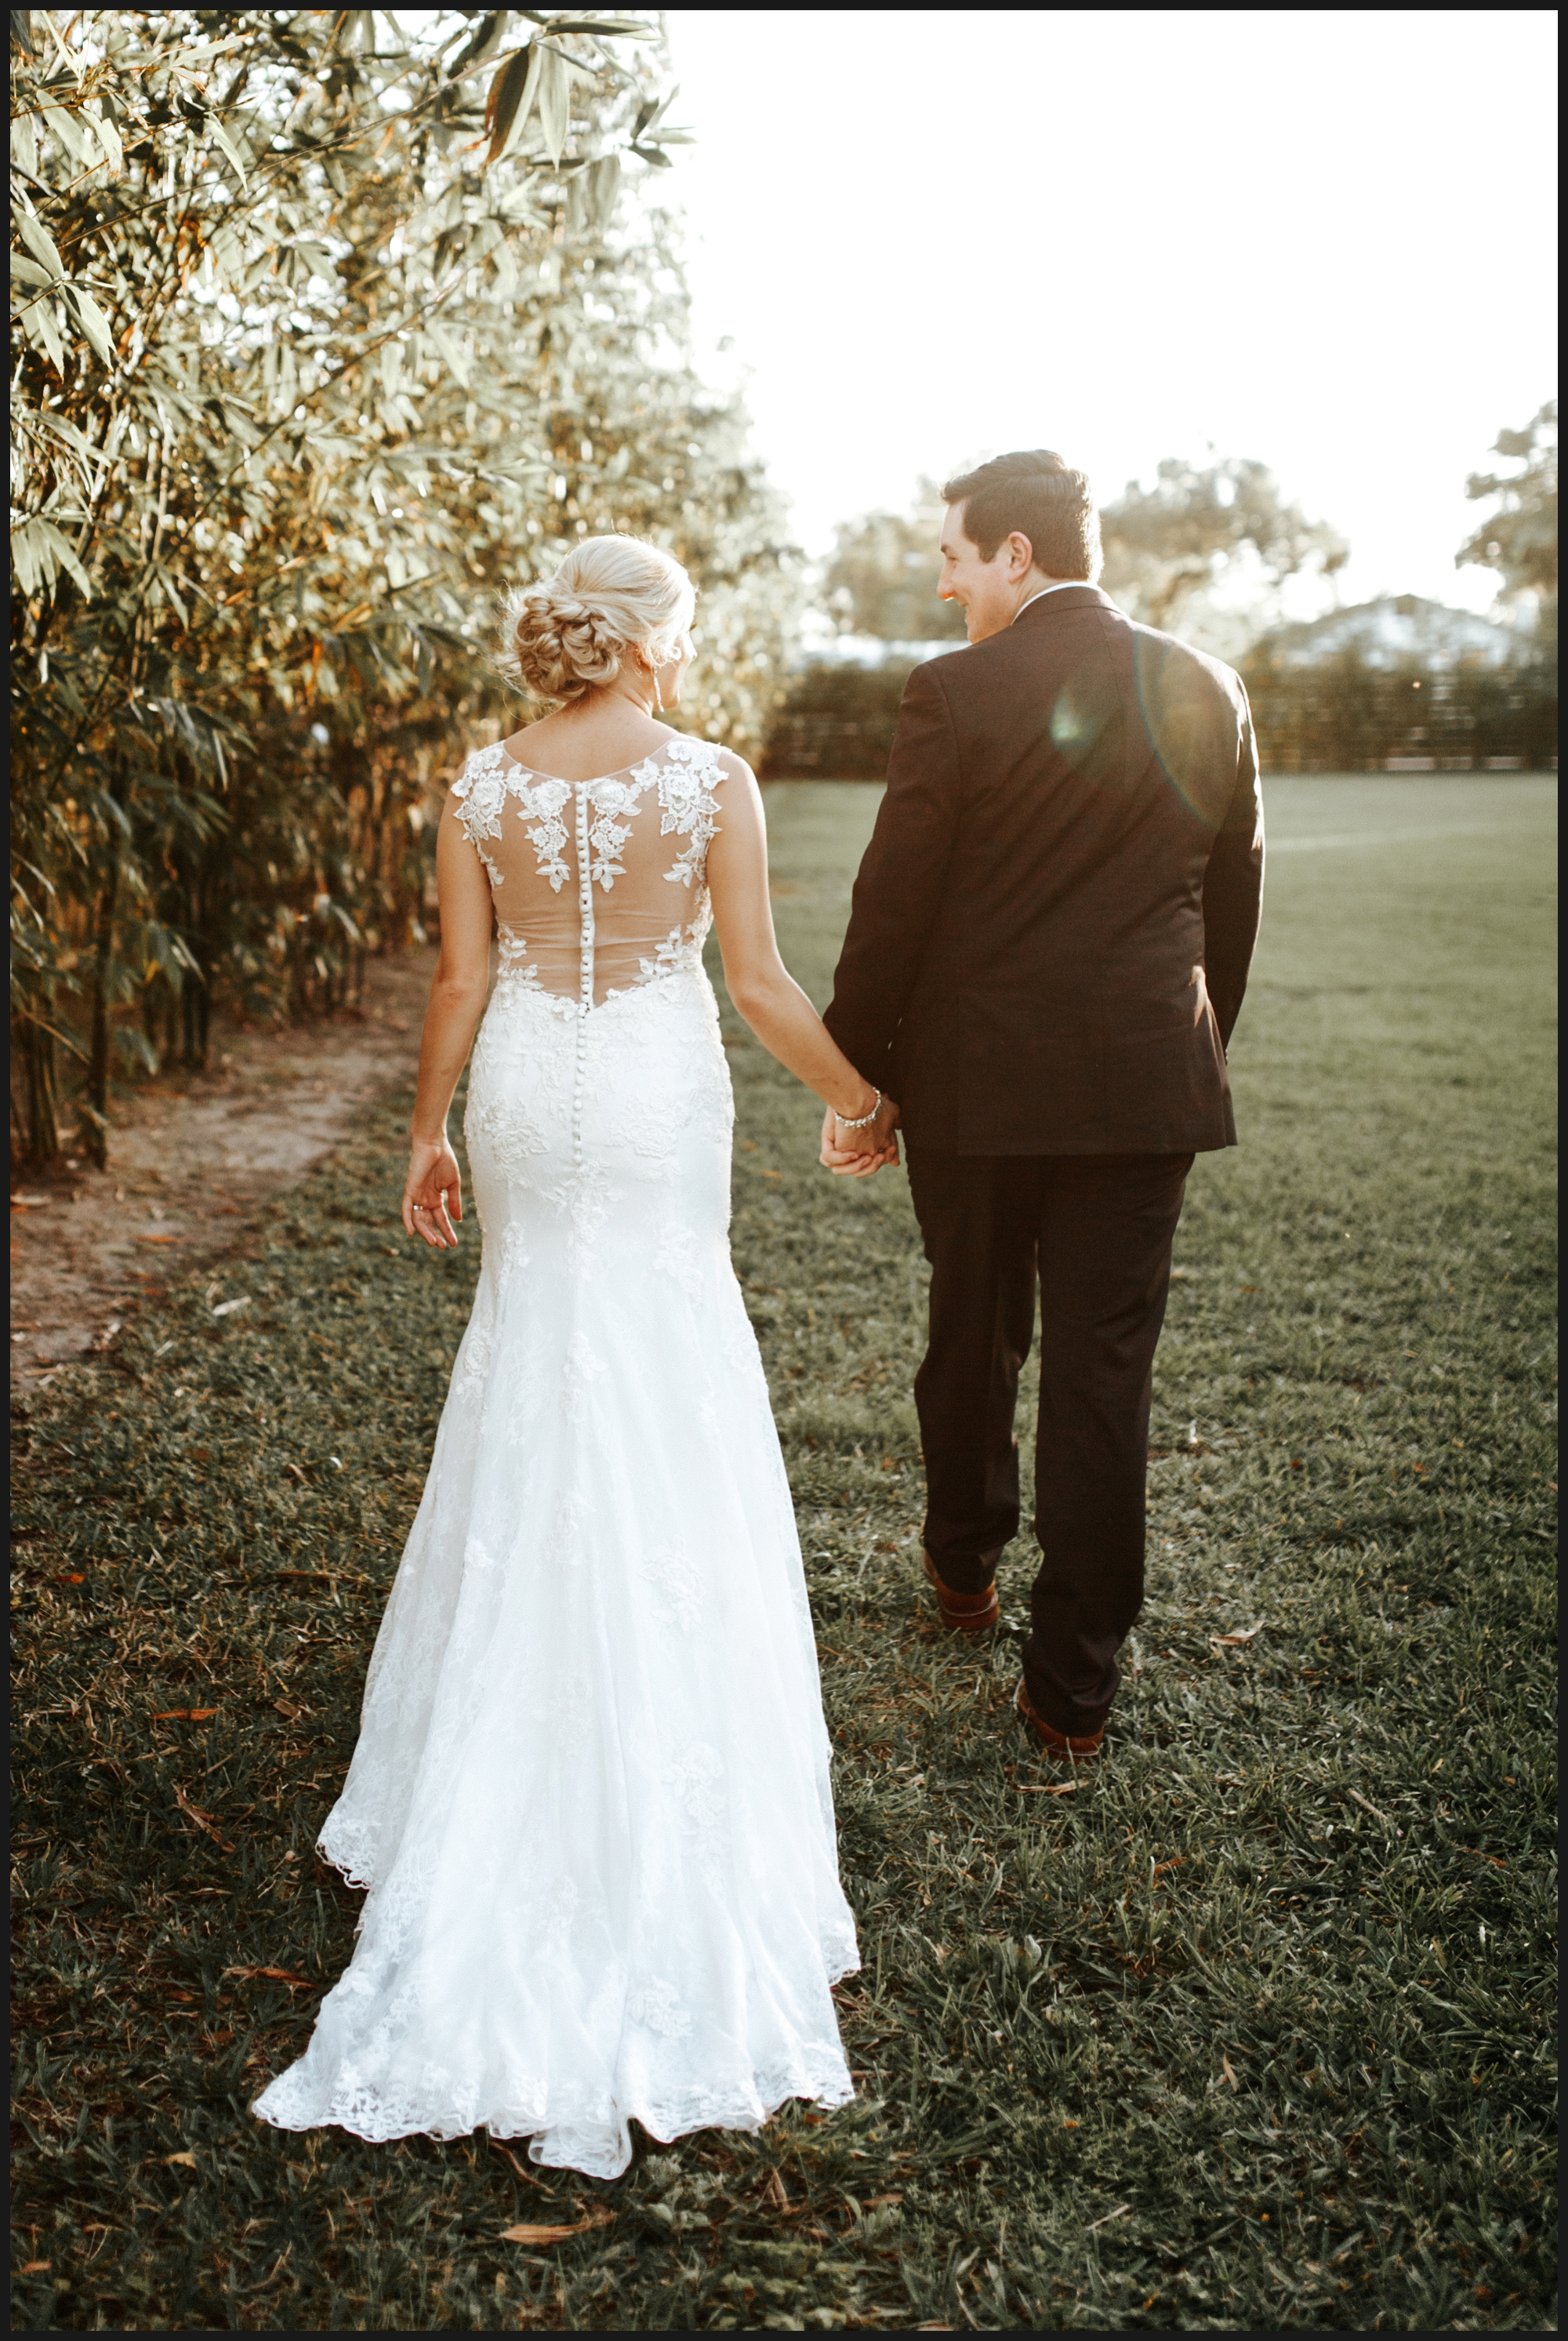 MitchandKatieOrlandoWeddingPhotographer_0101.jpg